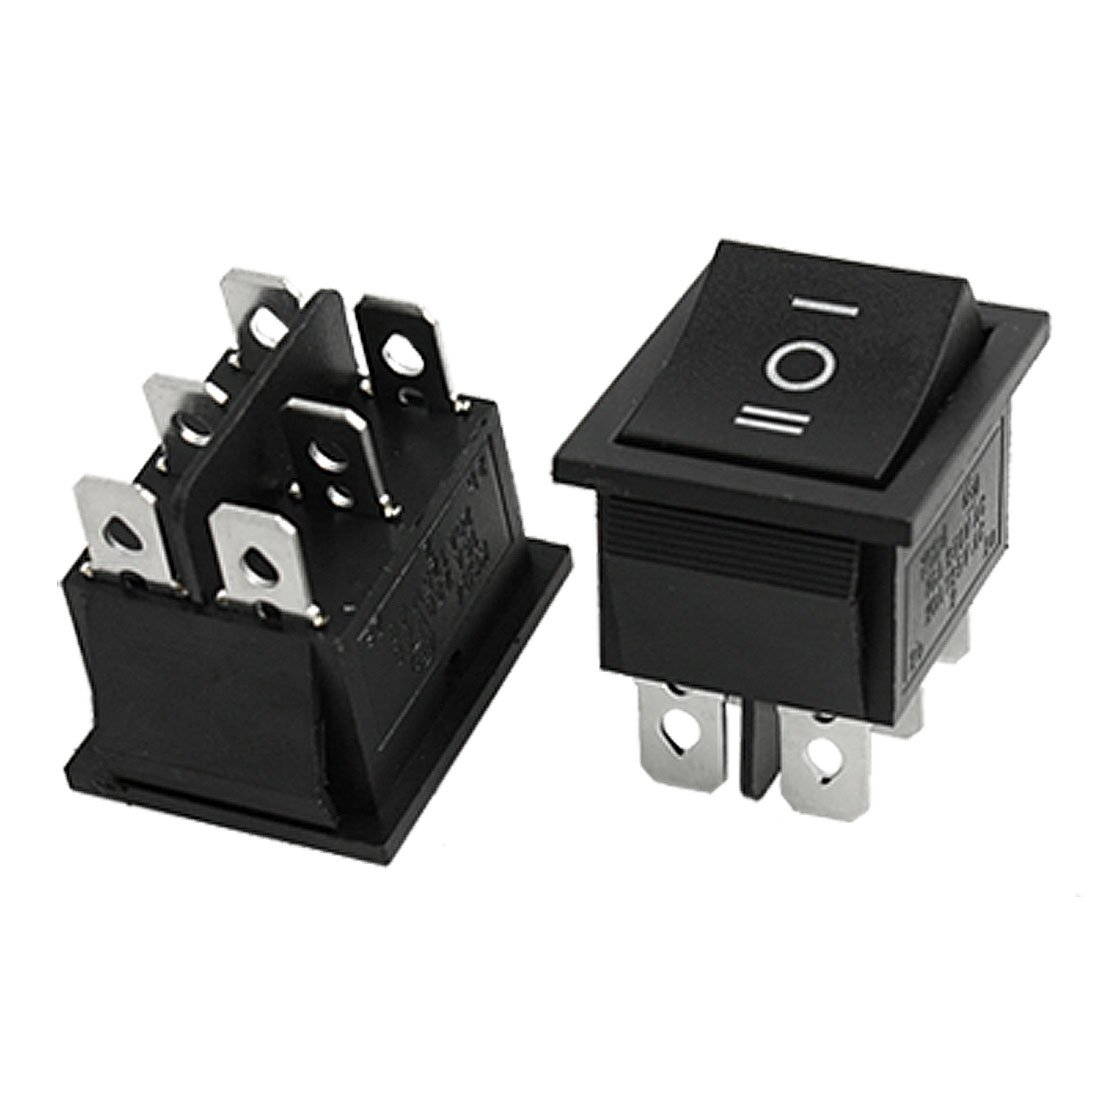 ac 3 prong rocker switch wiring diagram 2pcs 6 pin dpdt on off on 3 position snap in rocker switch 15a  2pcs 6 pin dpdt on off on 3 position